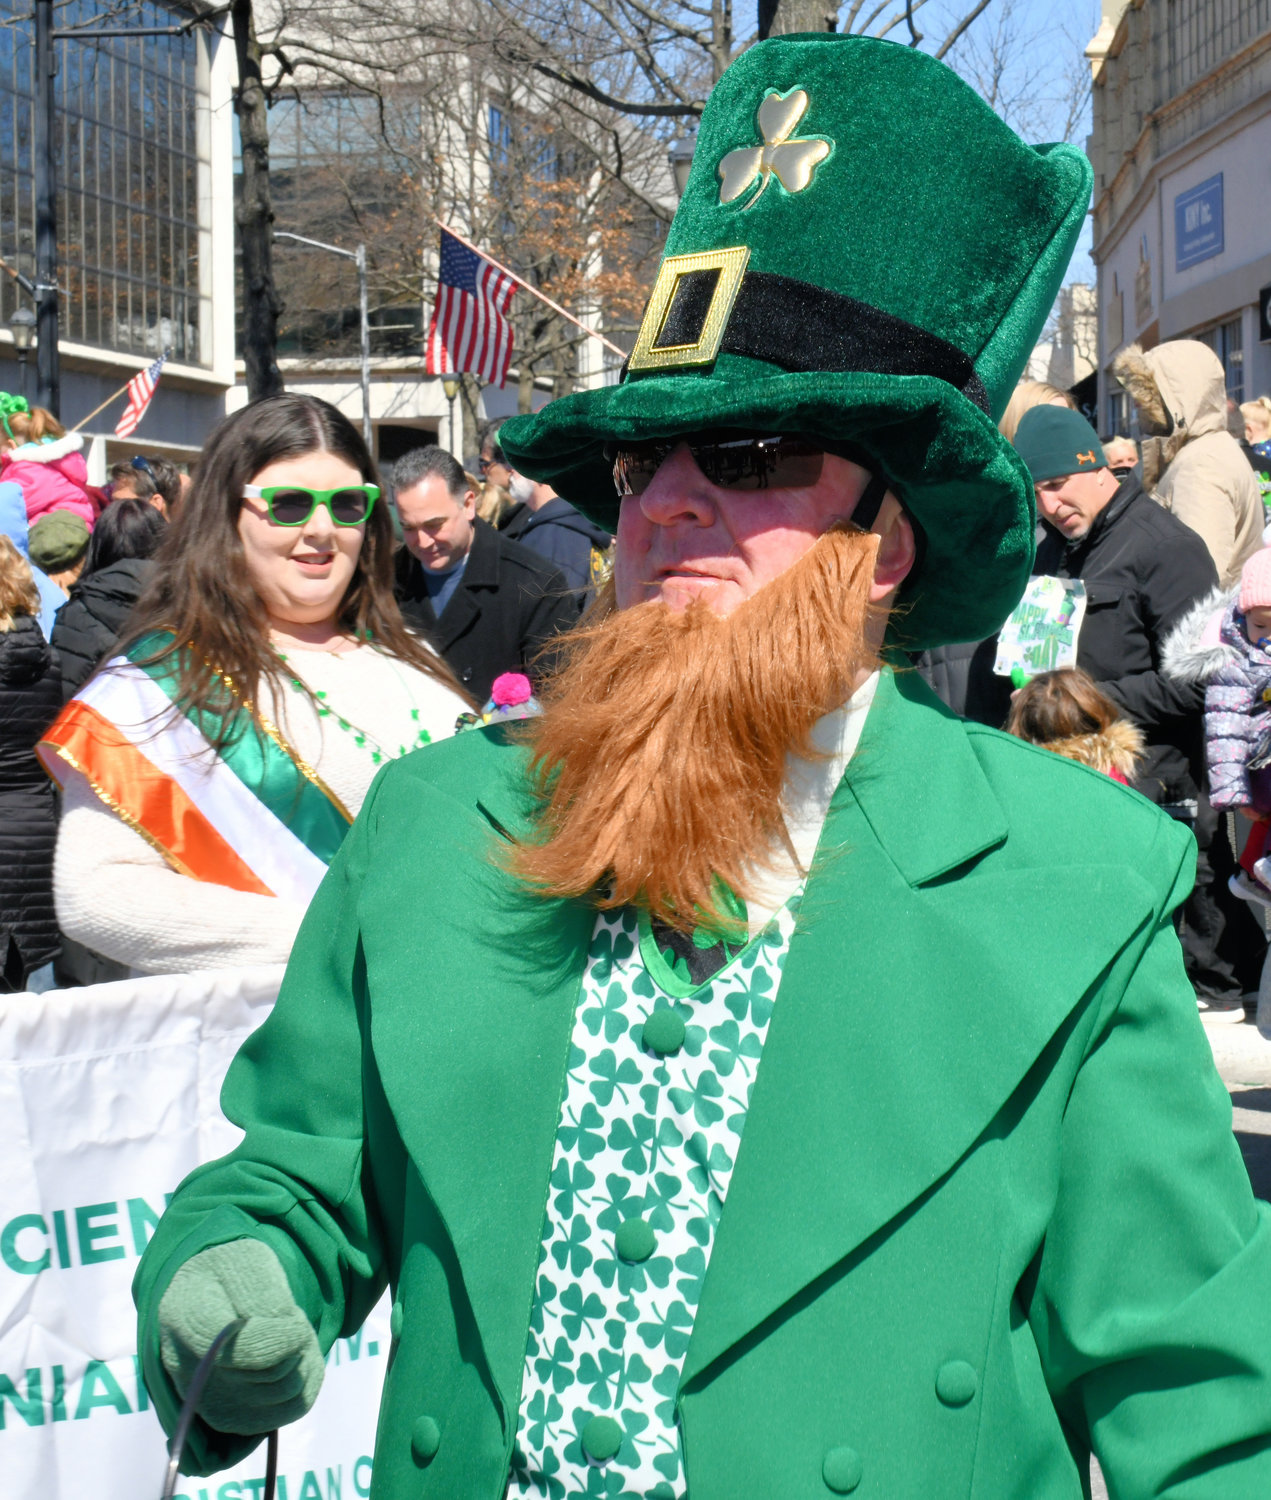 Patsy Furlong has led the St. Patrick's Day Parade in Glen Cove as the leprechaun since 2004.